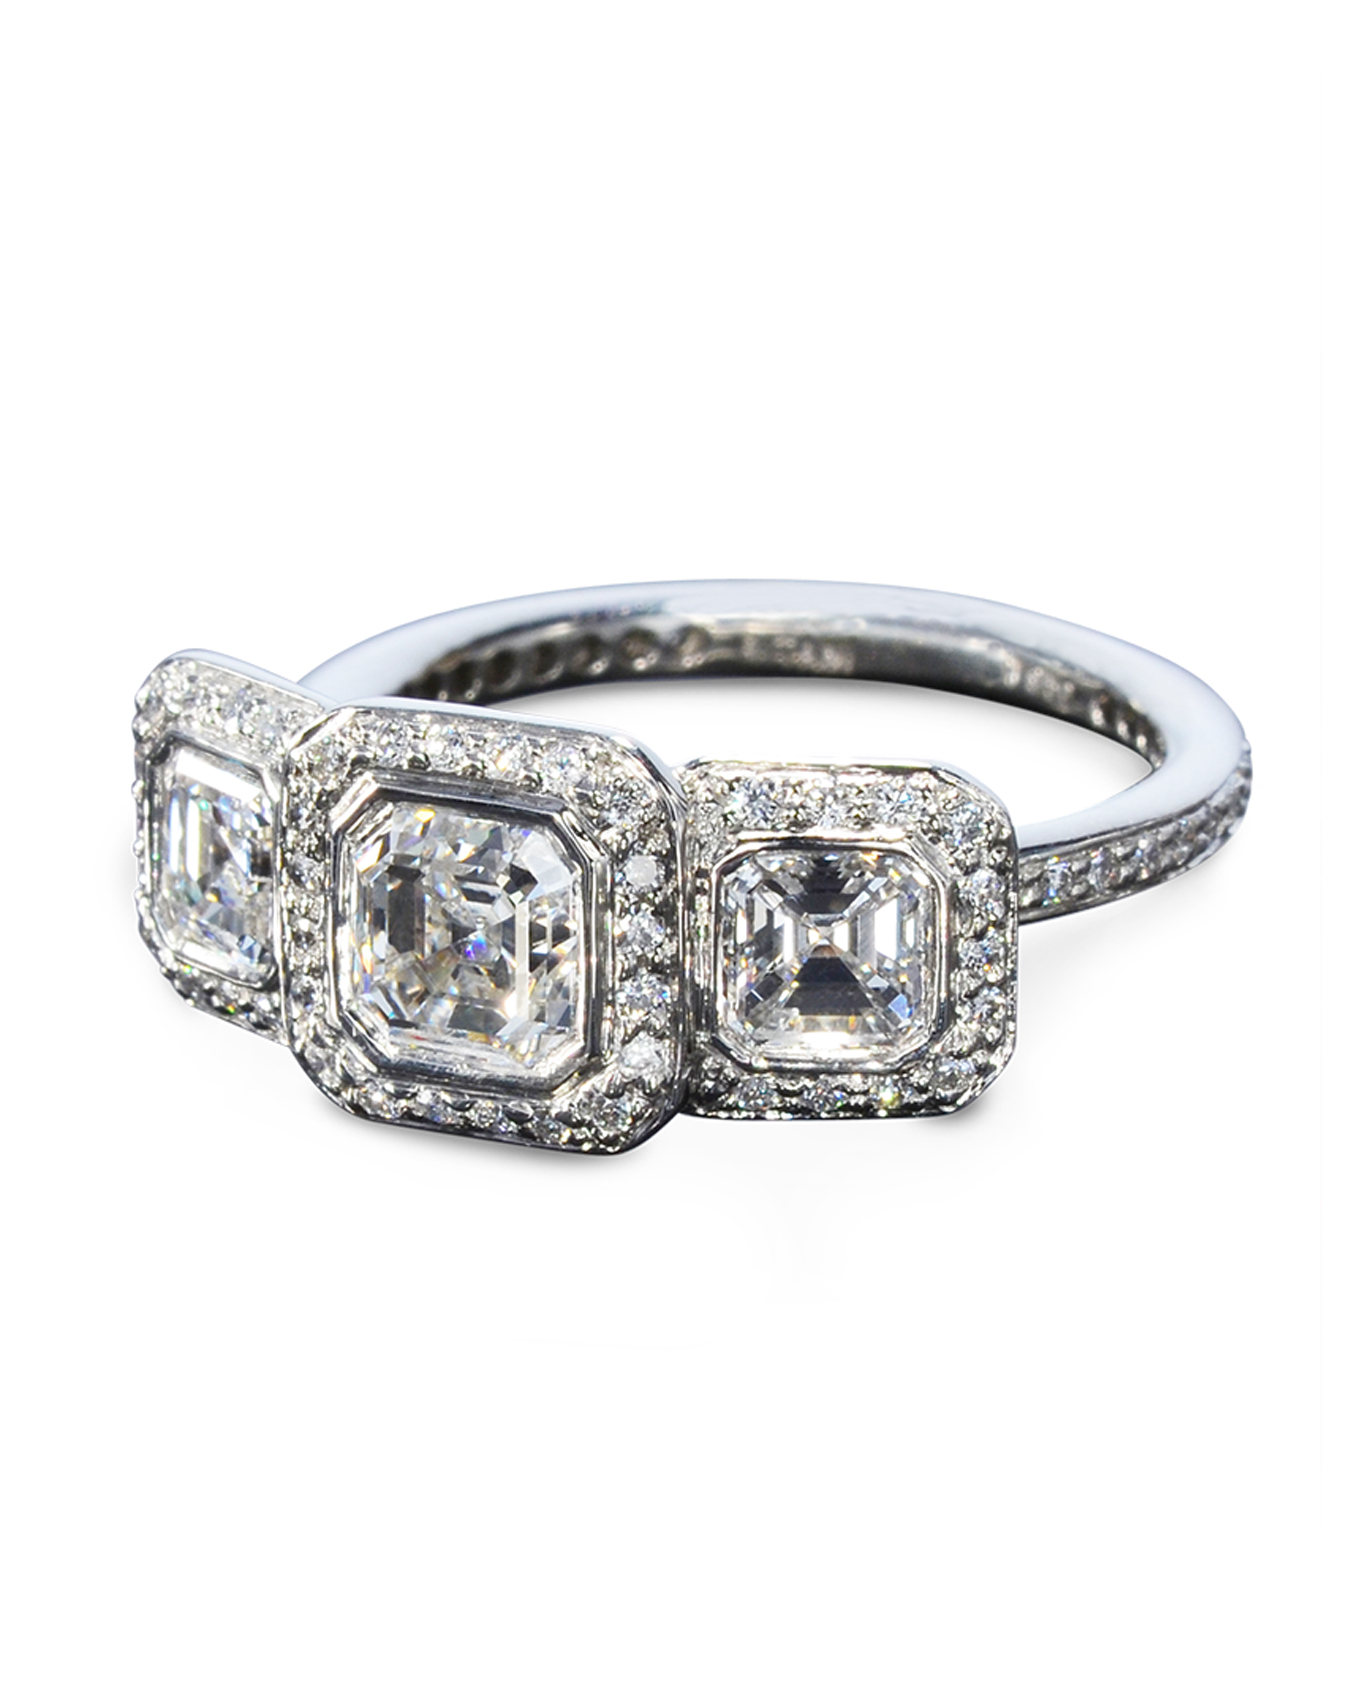 ring engagement rings specialist cut jewellers diamond campbell the classic solitaire s products dublin finest asscher